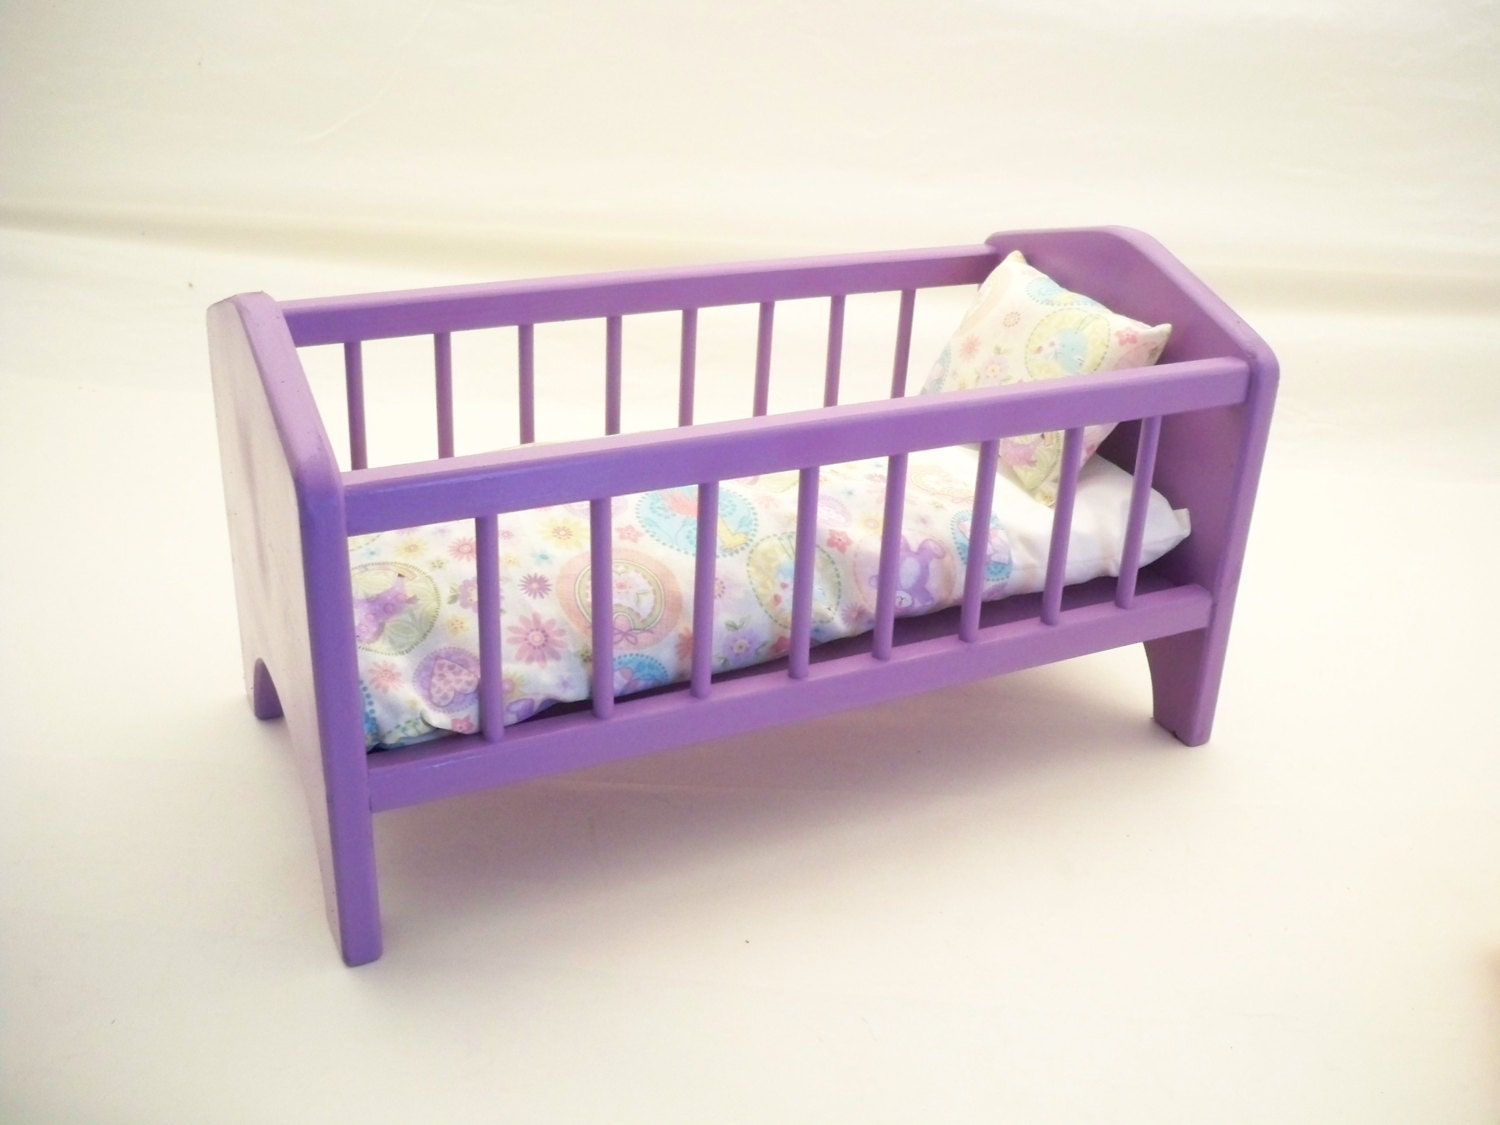 Marvelous photograph of Wood Doll BedBaby Doll Crib 18 inch Doll Crib by HummelCreations with #8A7341 color and 1500x1125 pixels